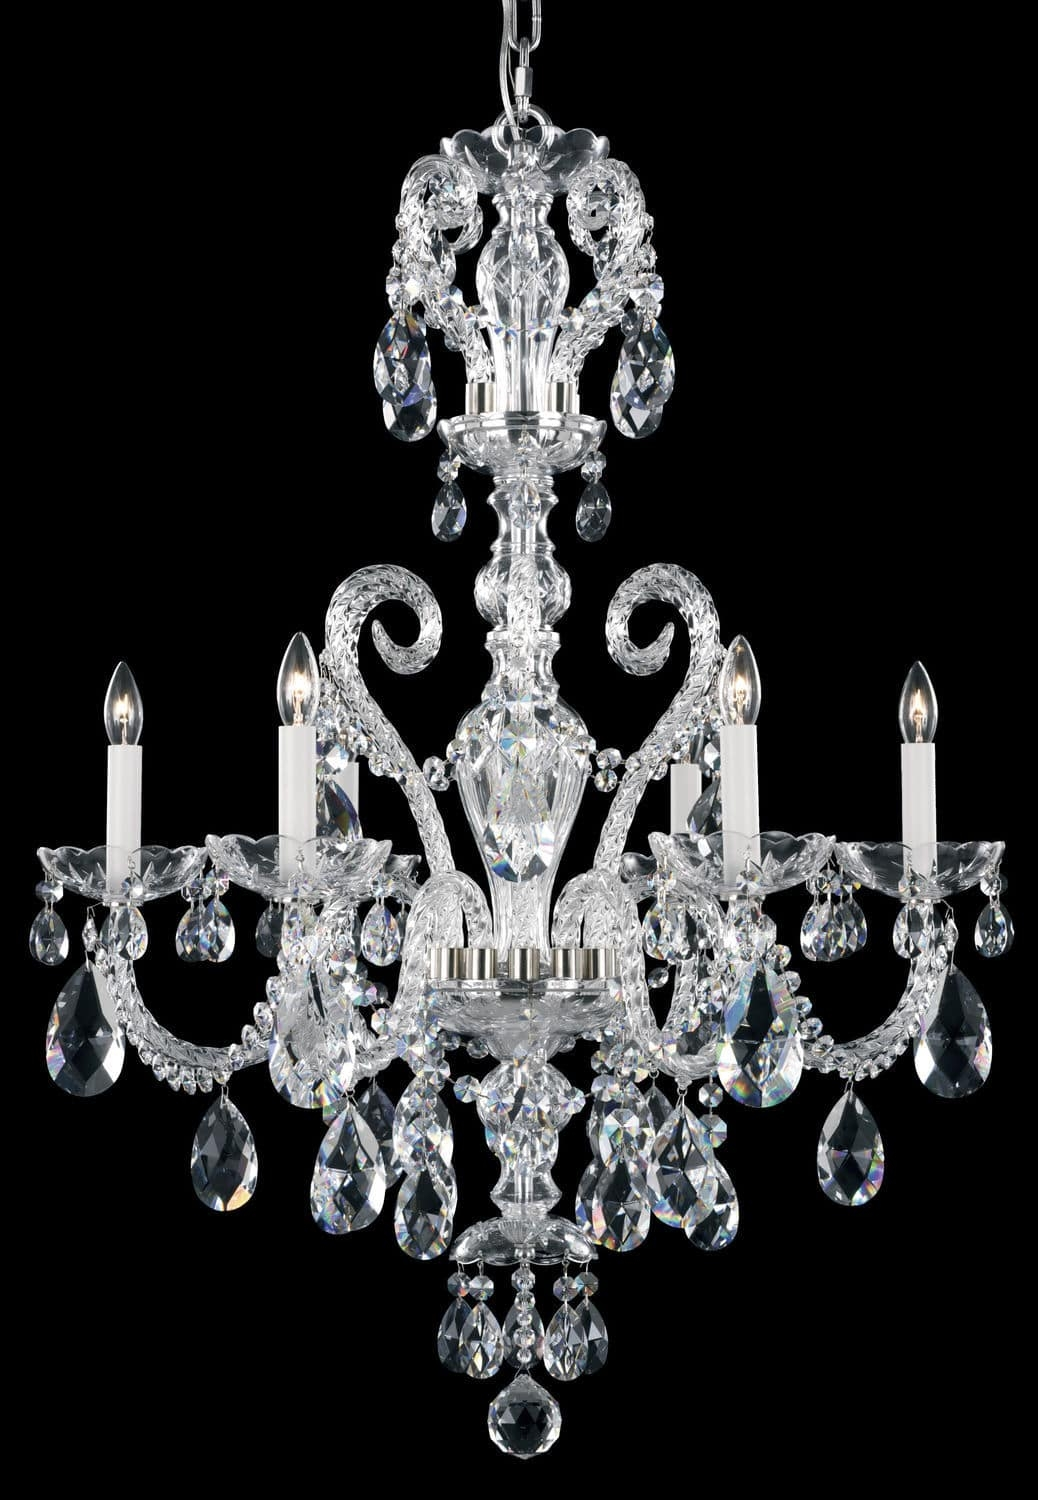 Traditional Chandelier Crystal Swarovski Crystal Regarding Traditional Crystal Chandeliers (Image 11 of 15)